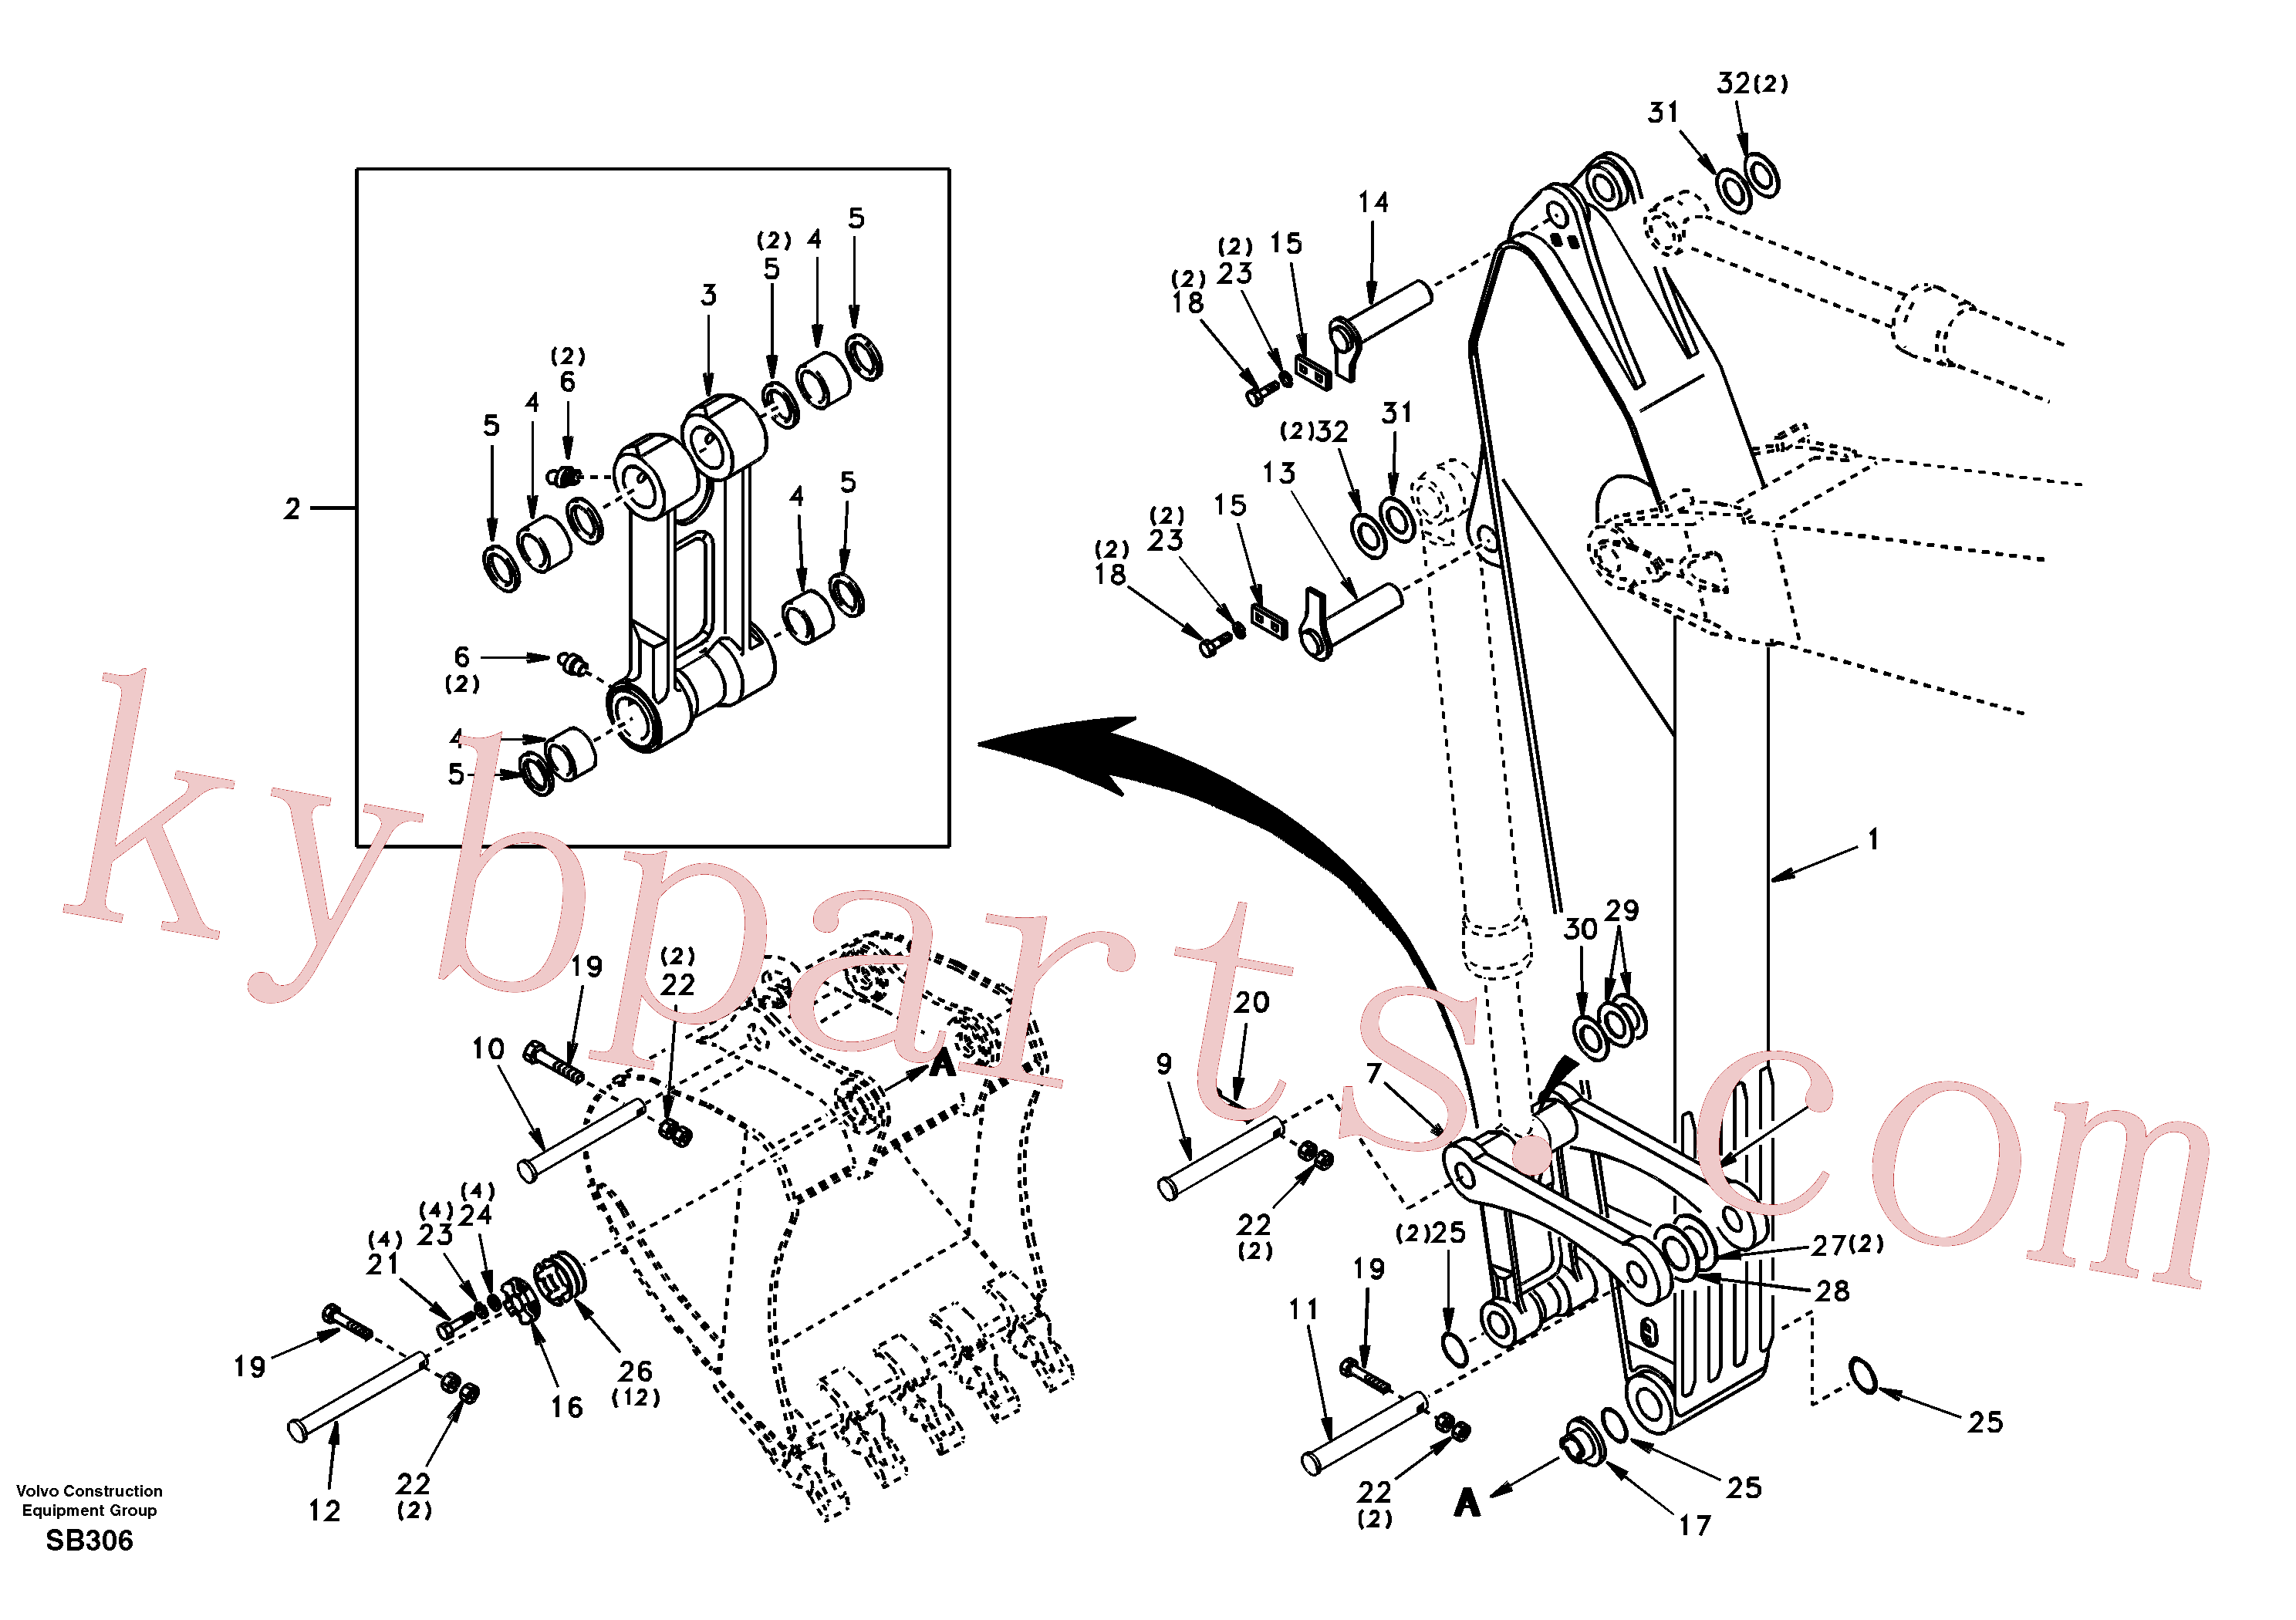 SA1172-00801 for Volvo Links to dipper arm(SB306 assembly)